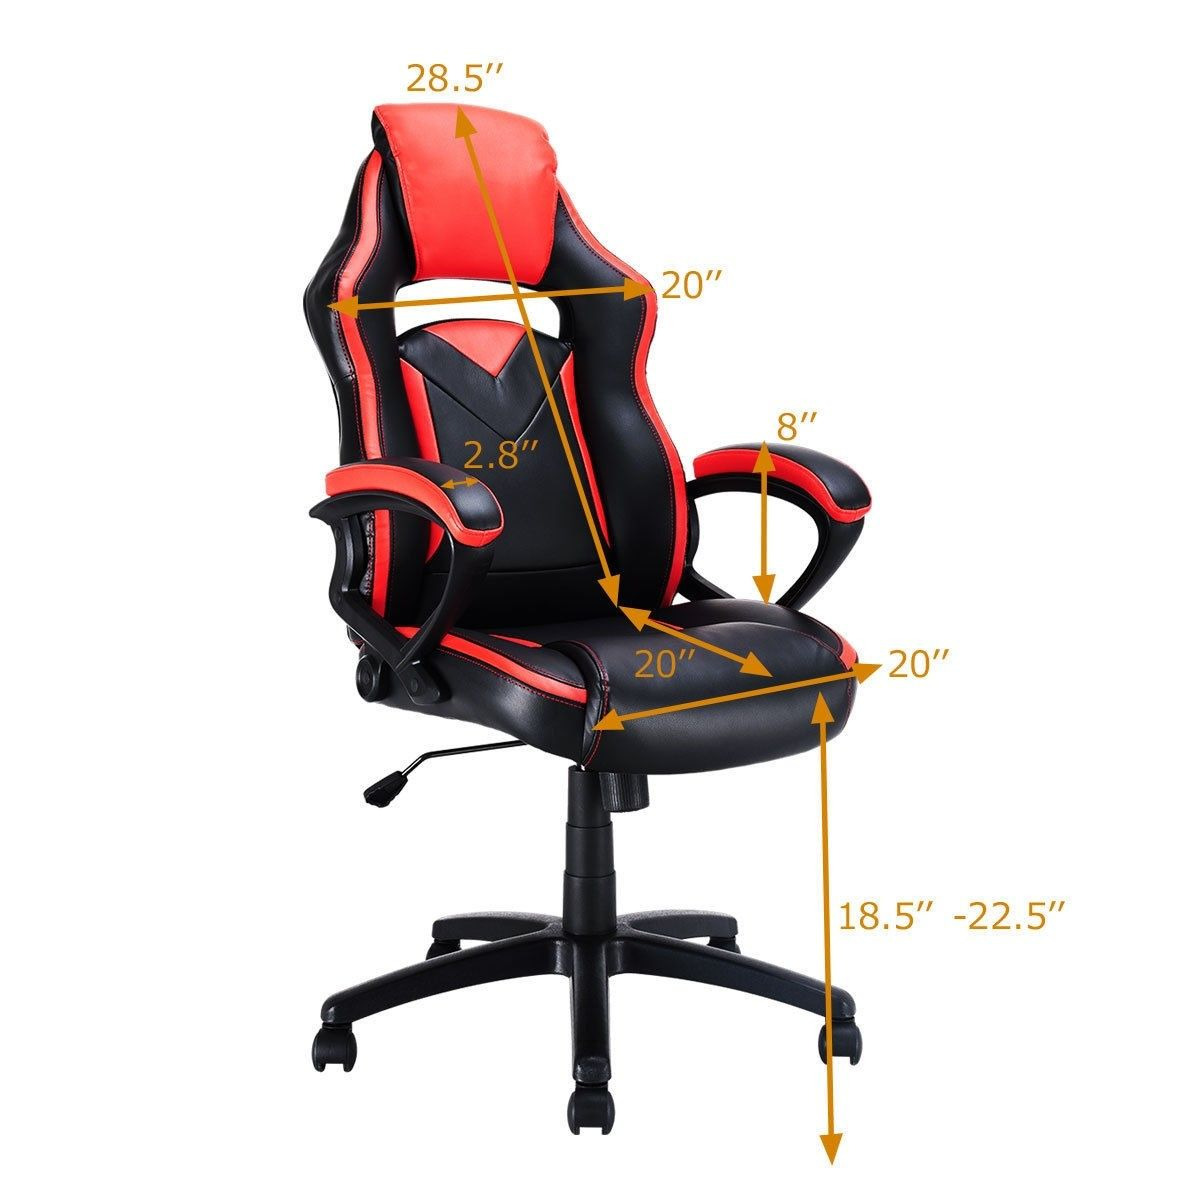 31 lbs racing style gaming chair swivel office chair 90